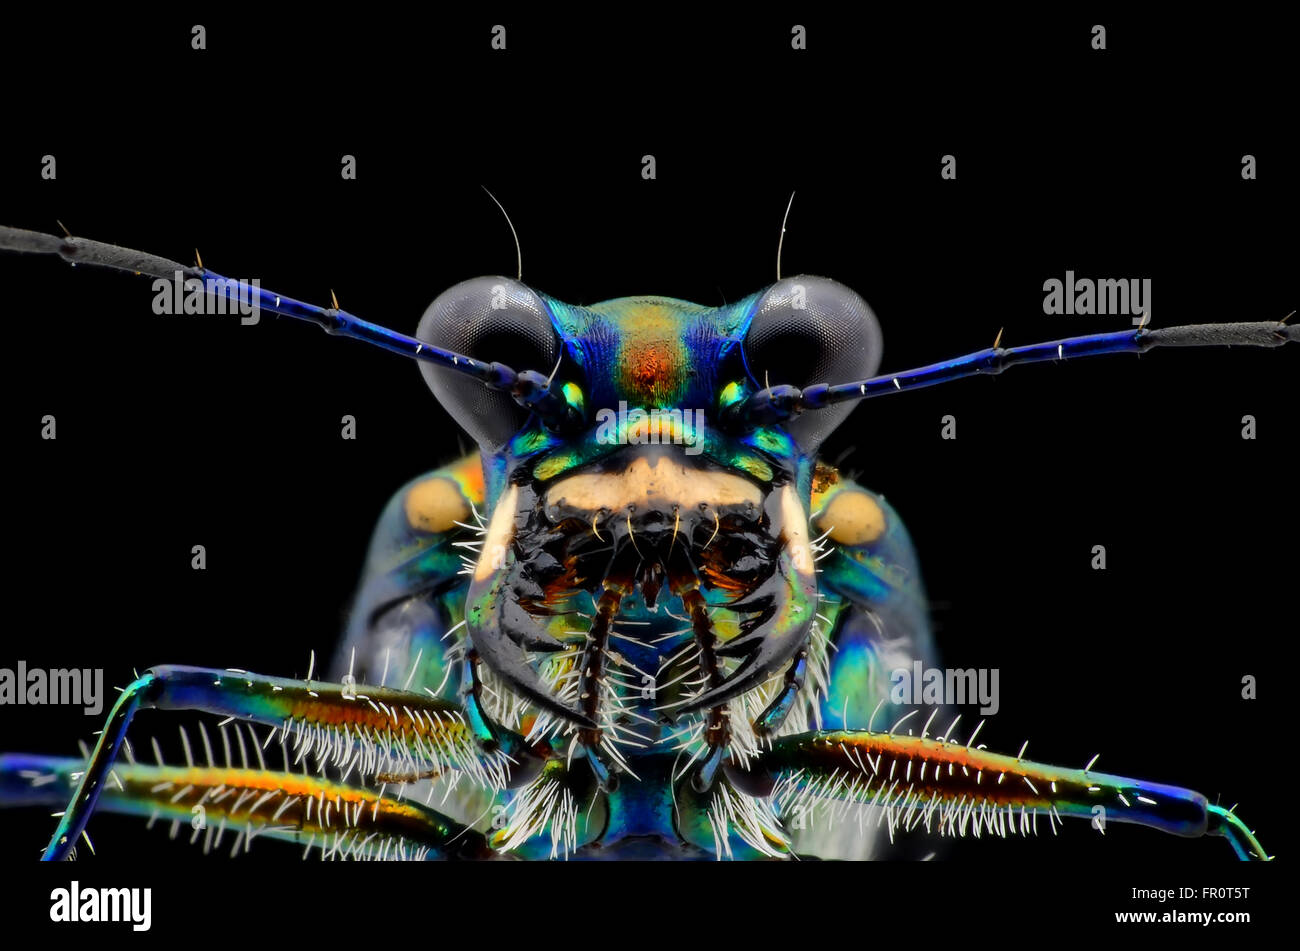 tiger beetle face isolated on black background - Stock Image